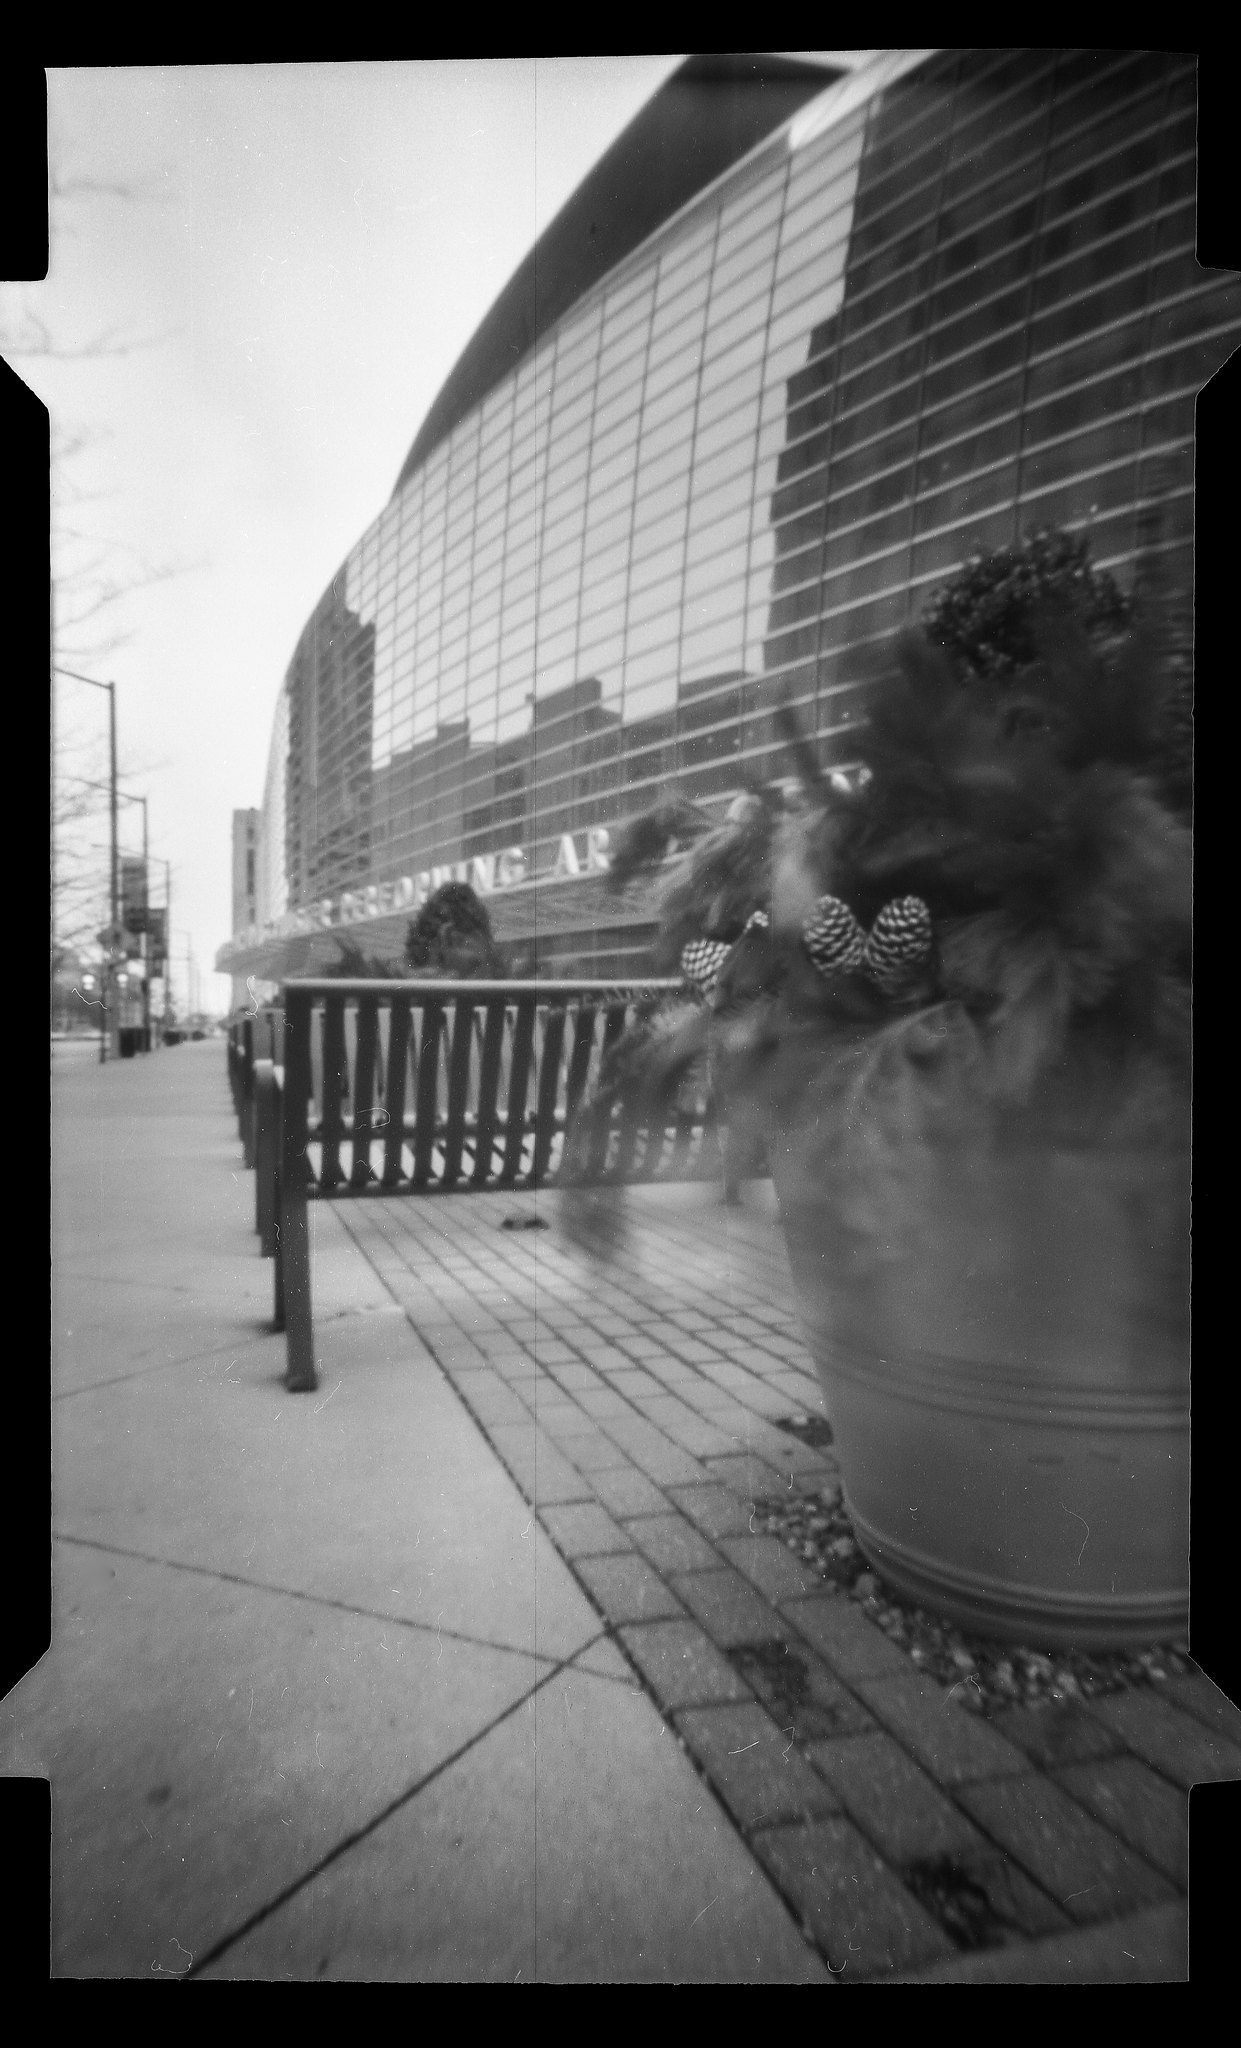 Schuster Center, Dayton on a windy morning - NOON 612 Pinhole Camera on Fuji ACROS 100 film